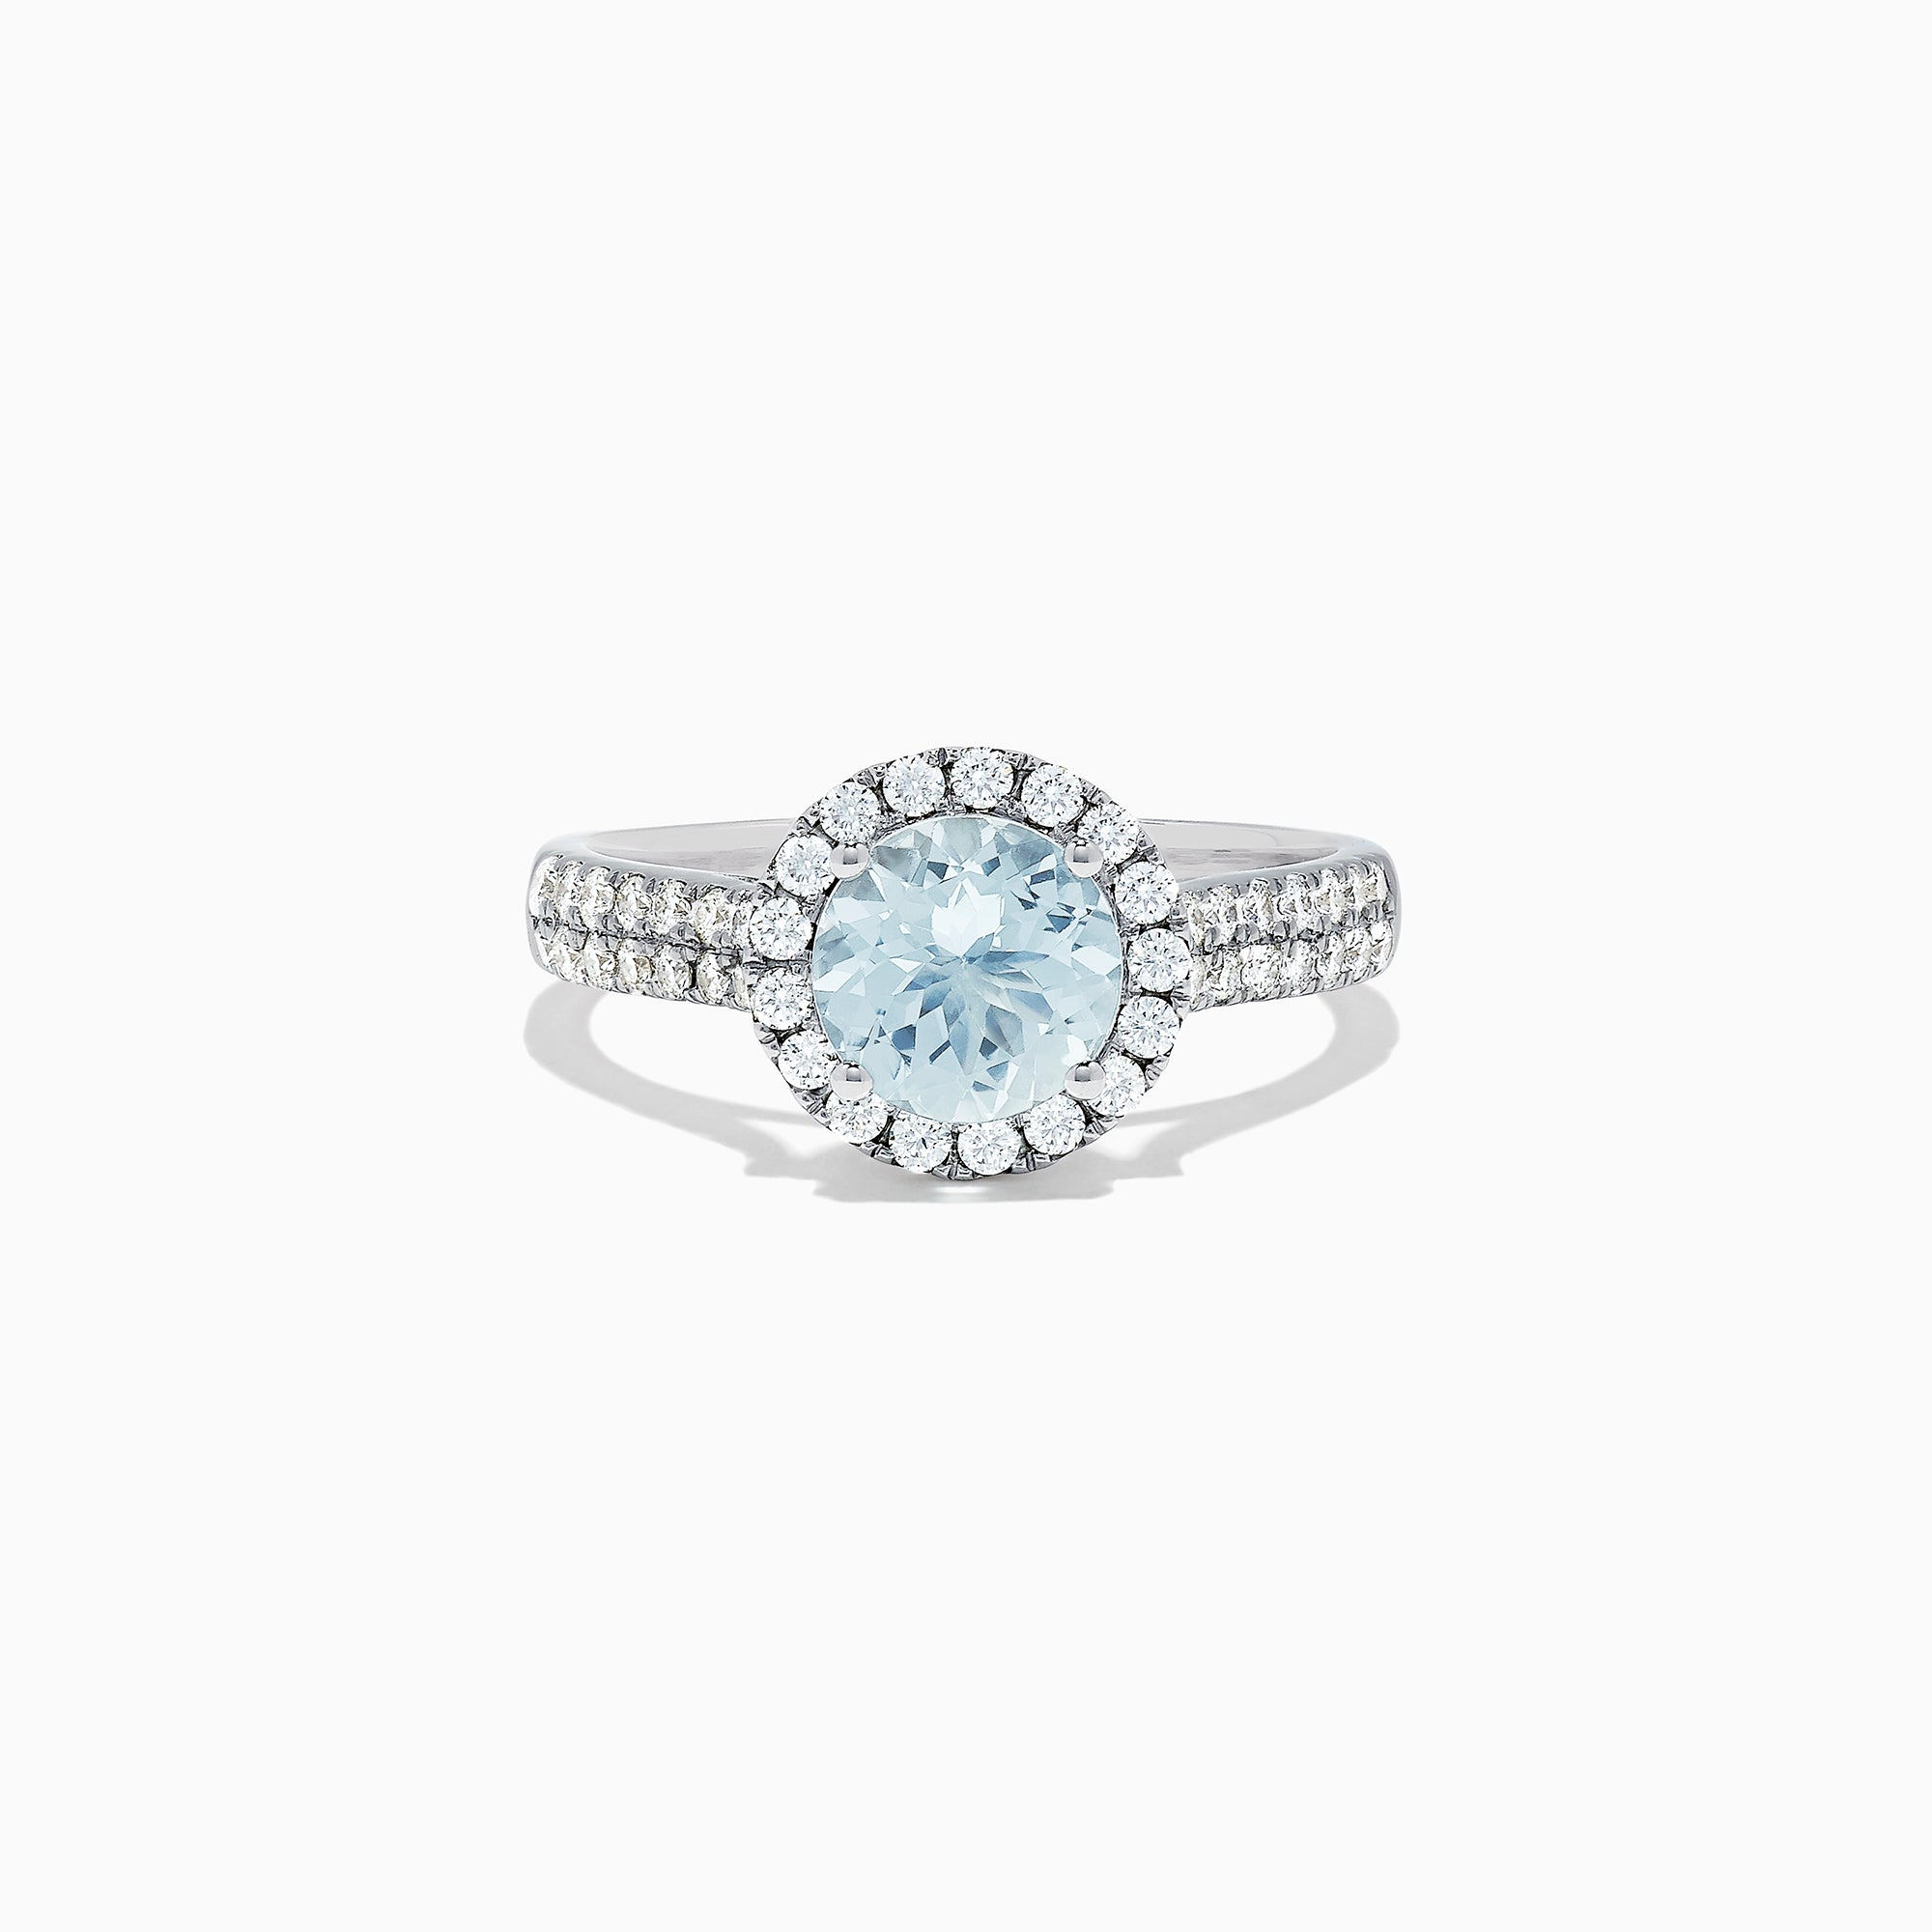 Effy Aquarius 14K White Gold Aquamarine and Diamond Ring, 1.59 TCW